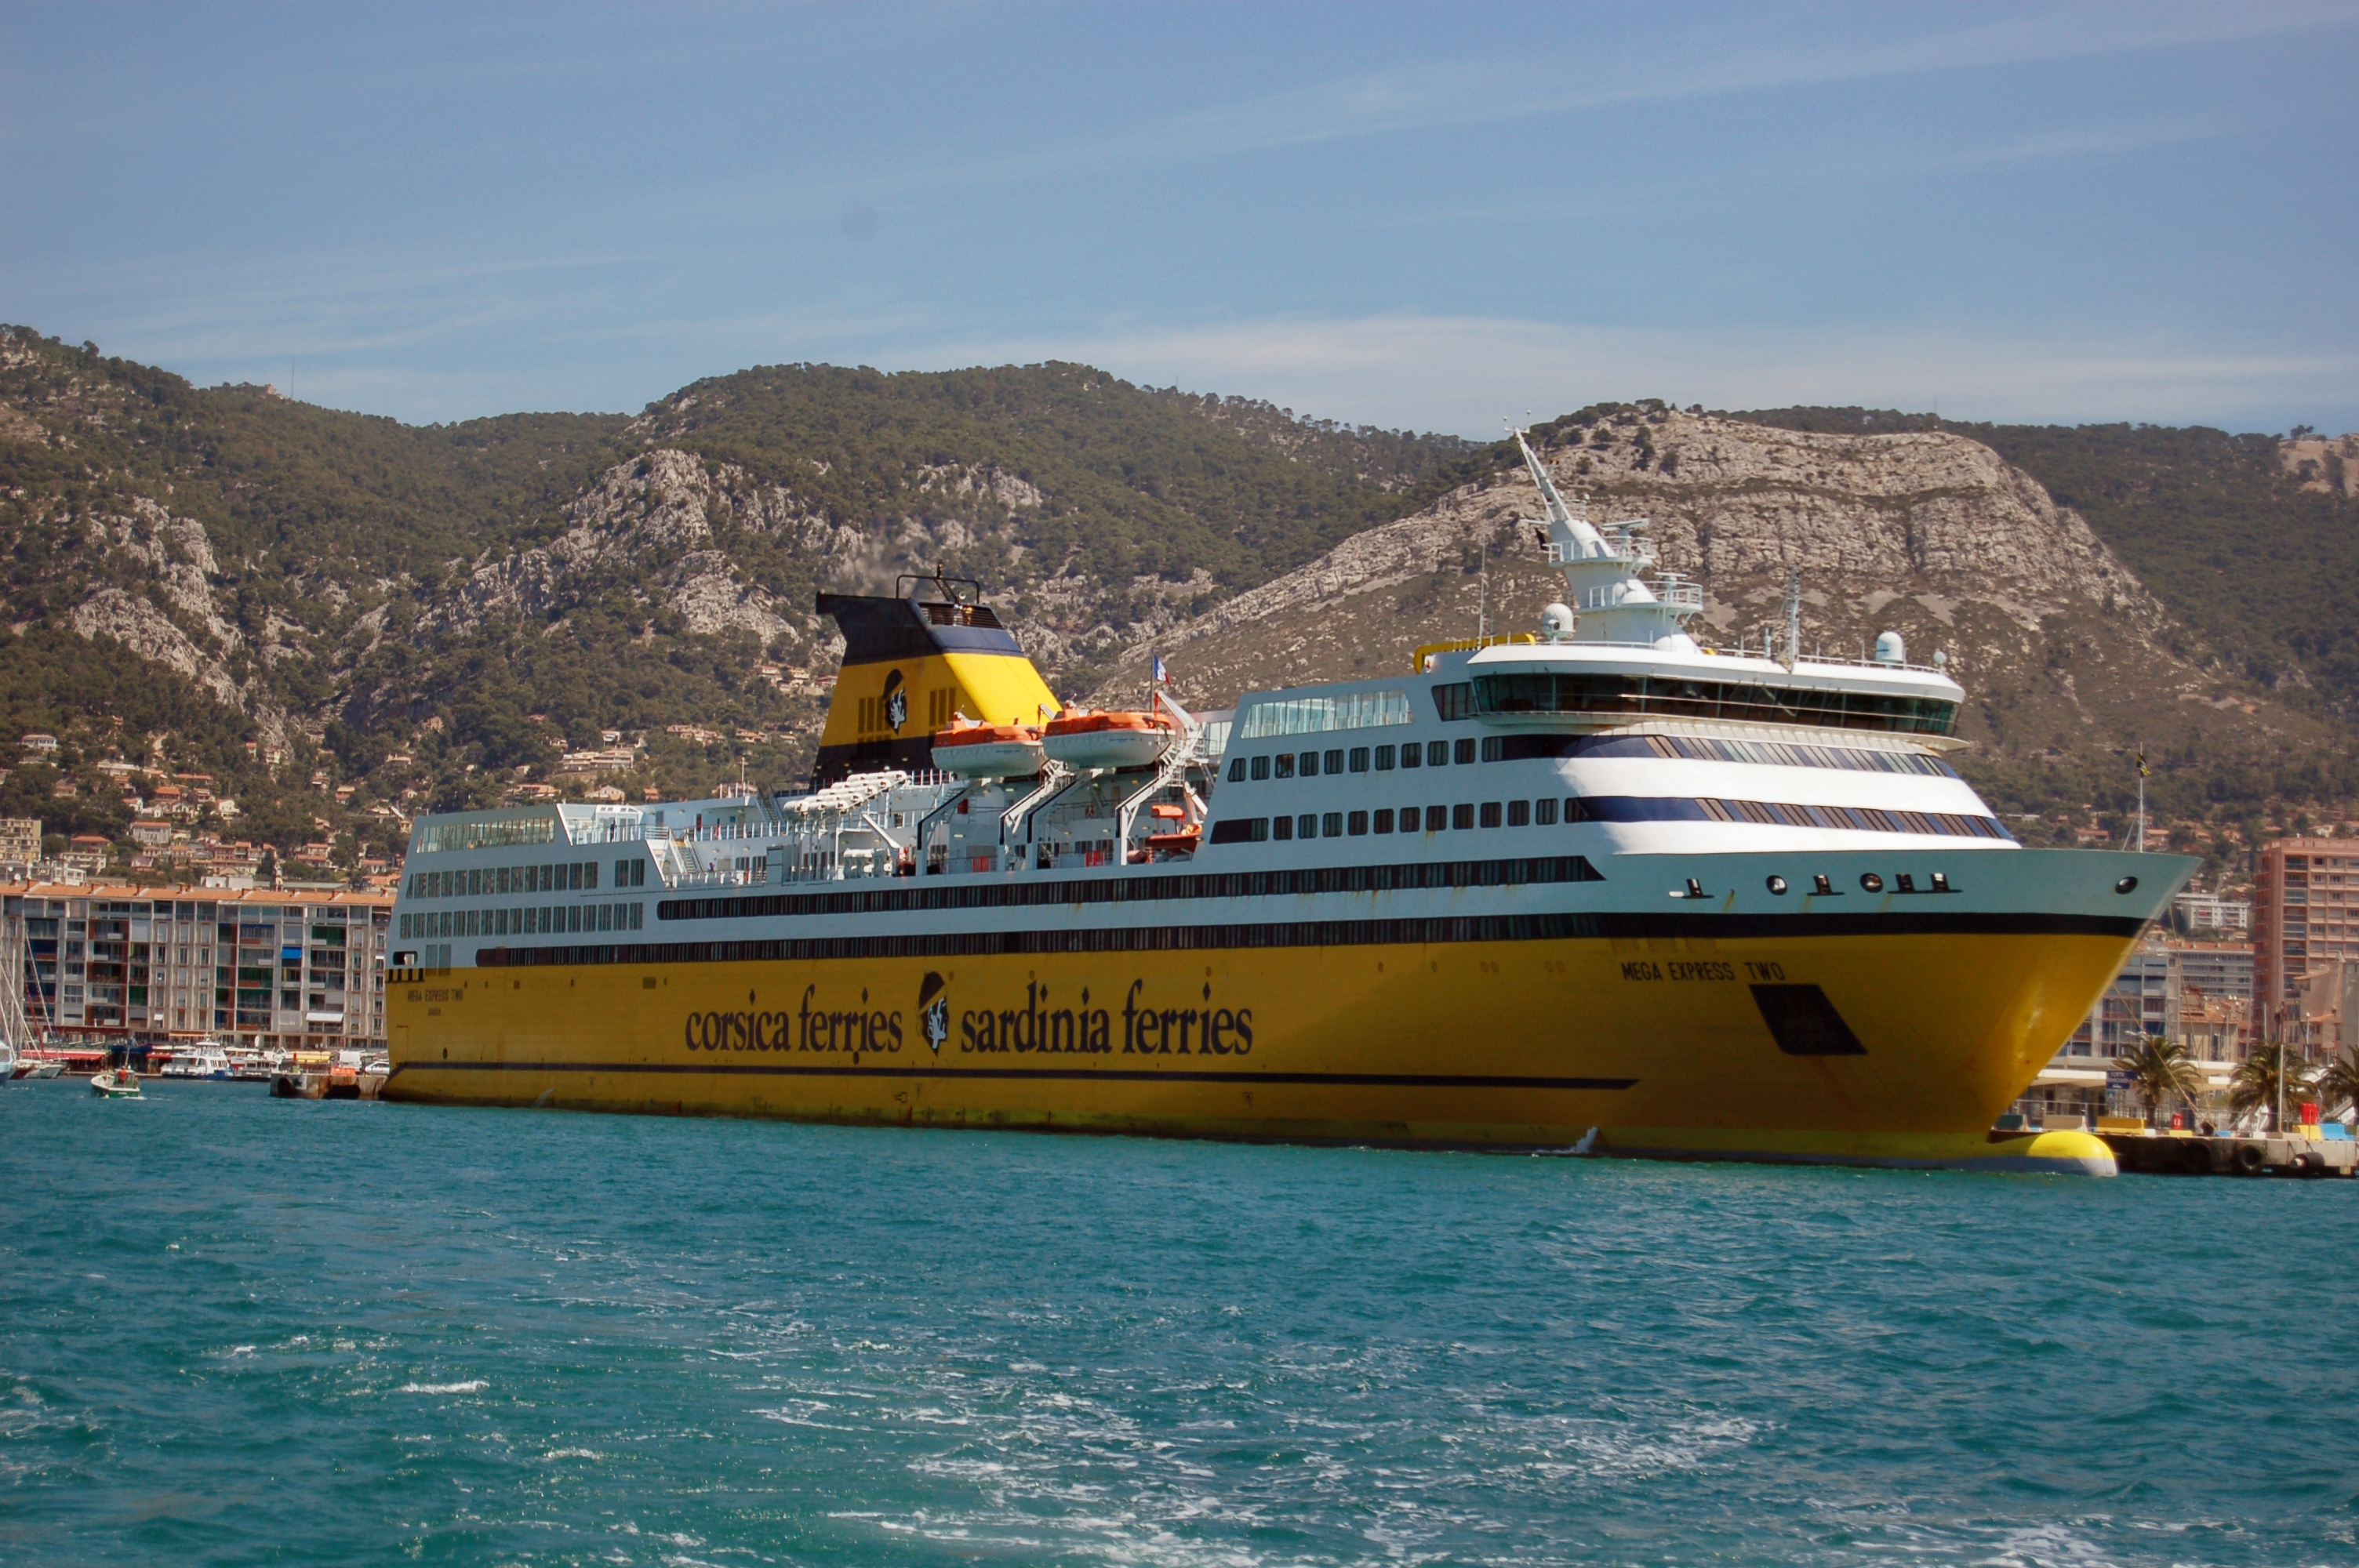 File corsica ferries wikimedia commons - Port toulon corsica ferries ...